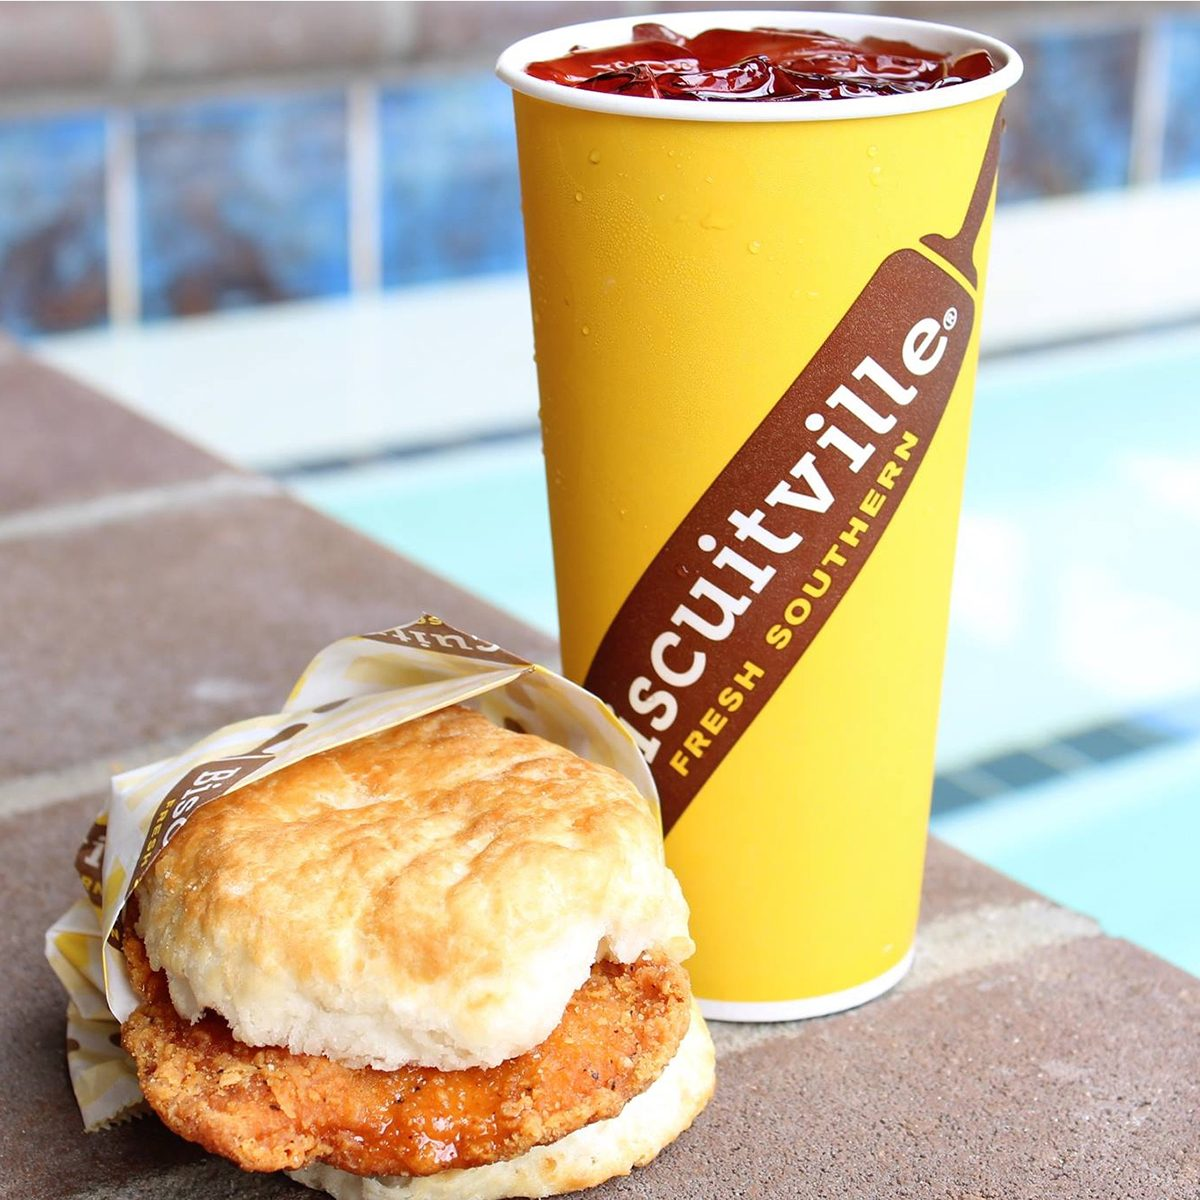 Biscuitville biscuit sandwich and drink